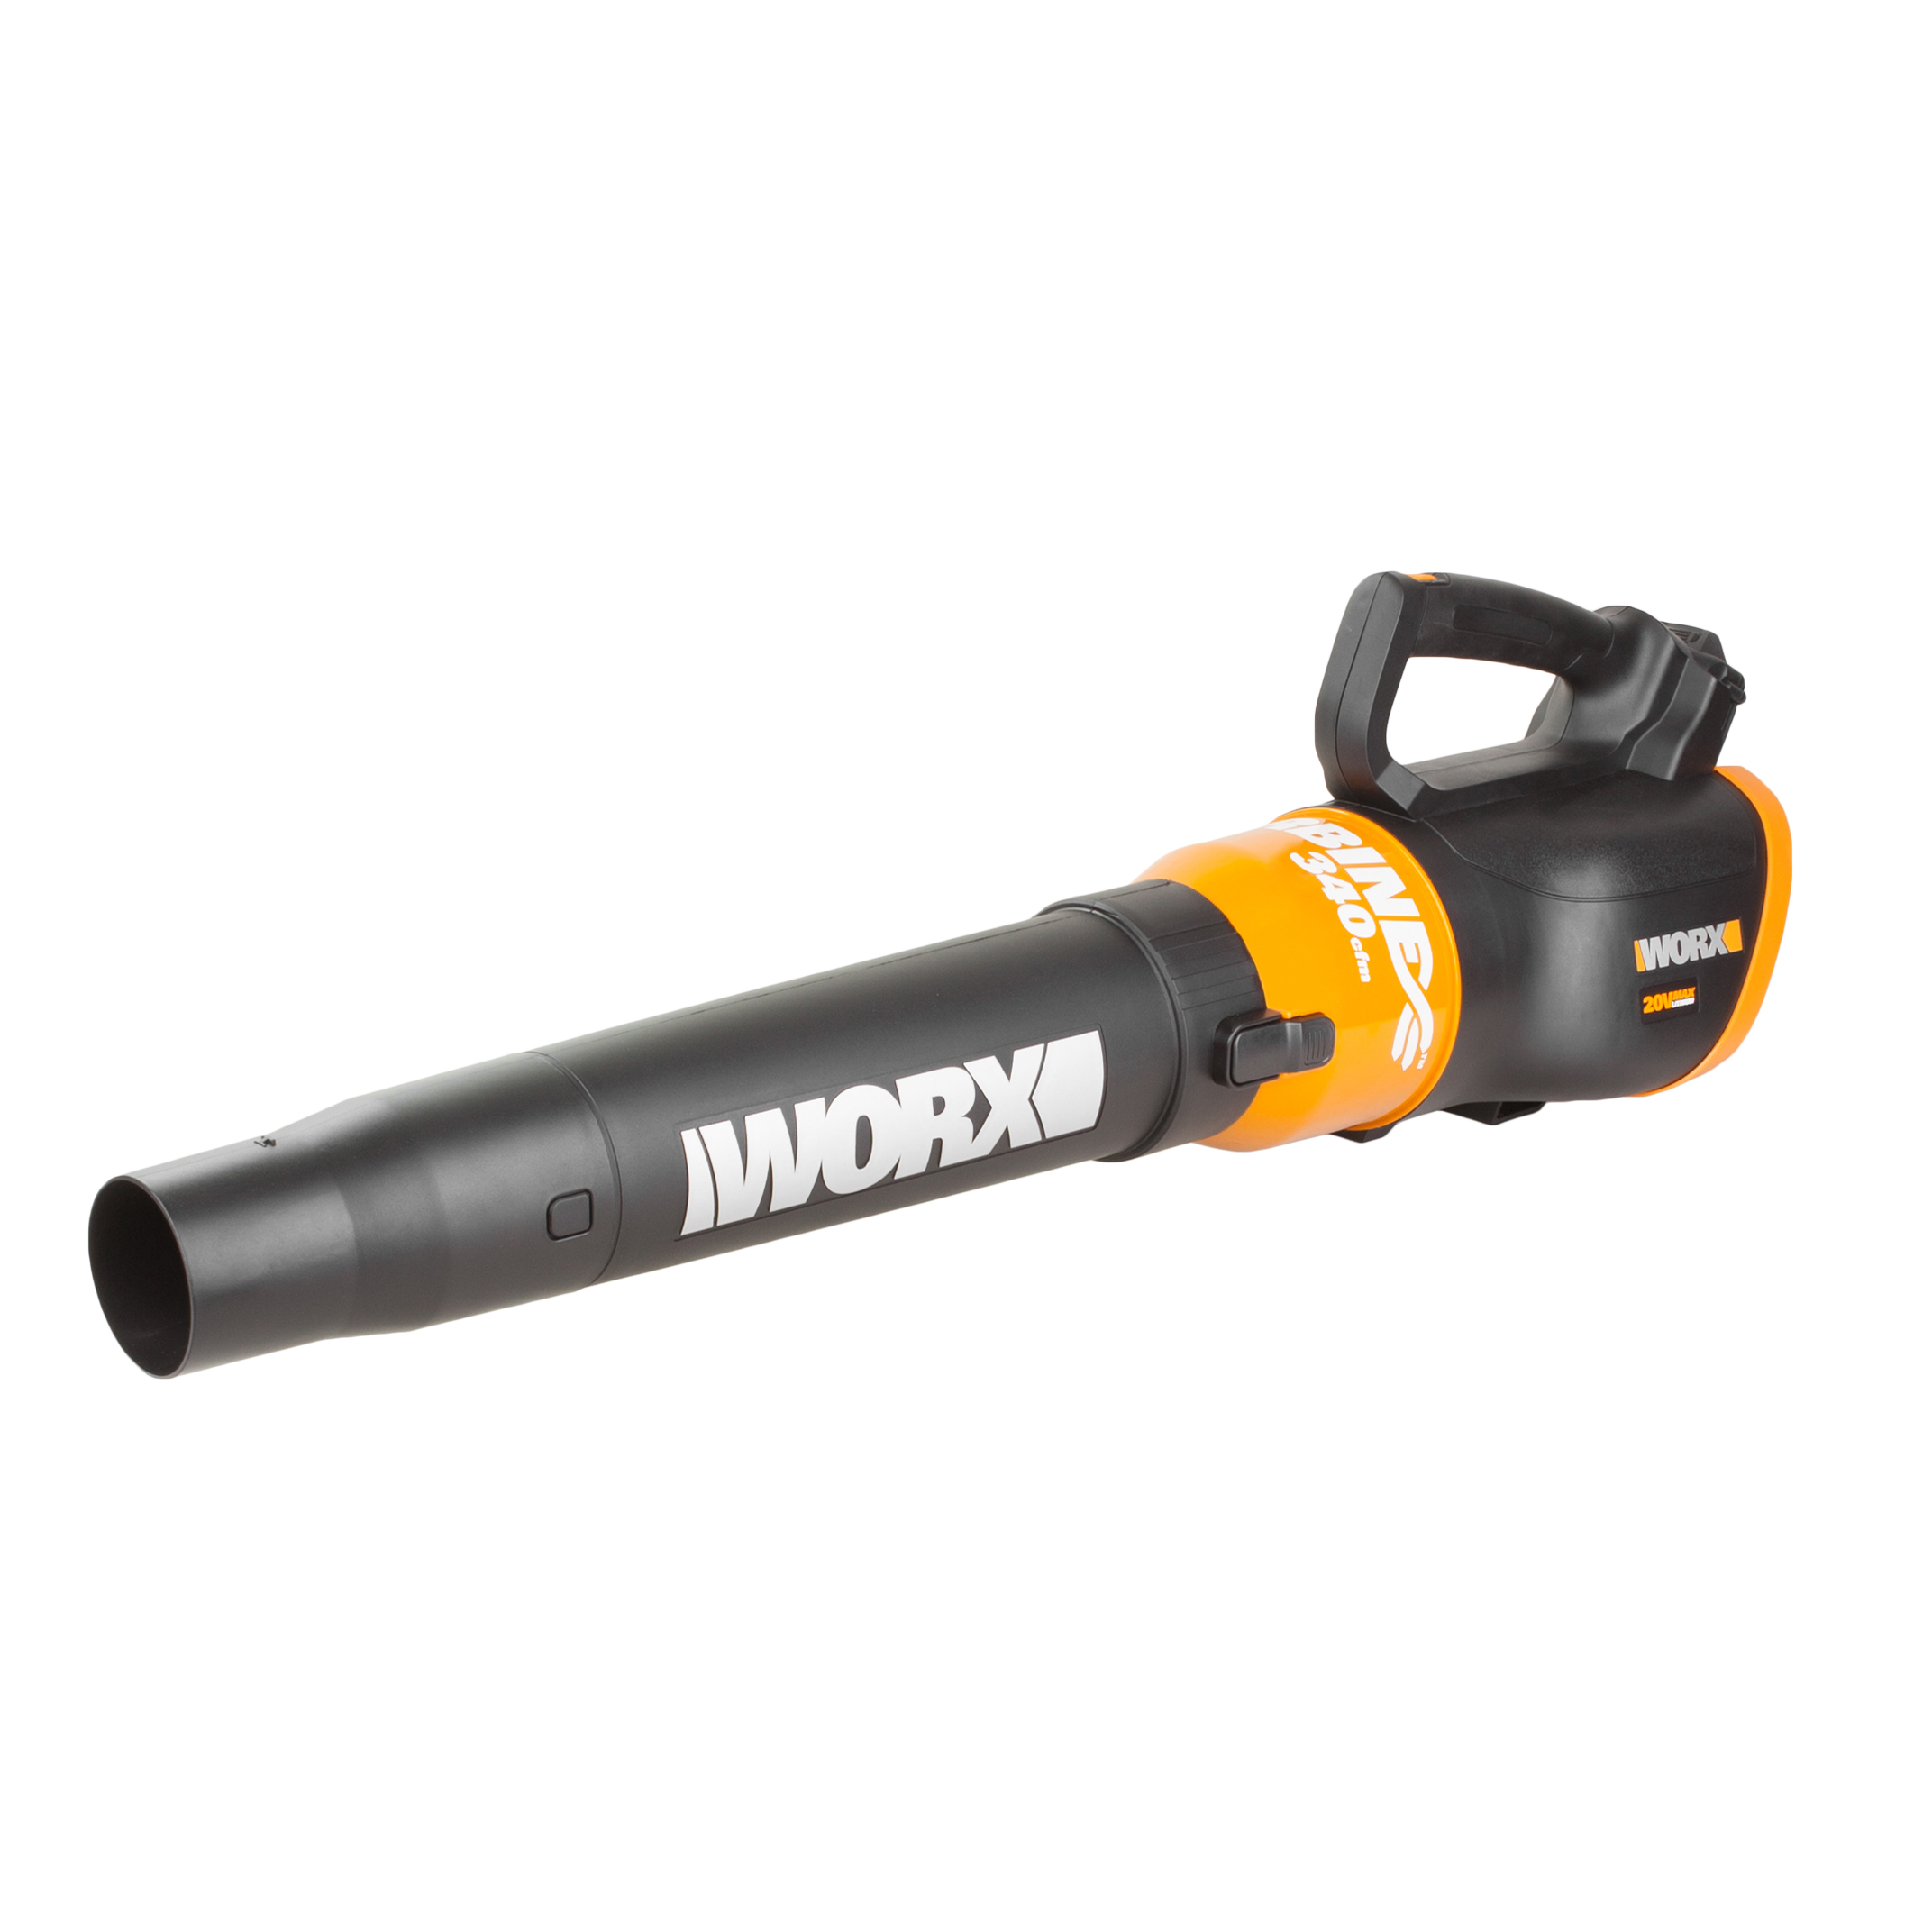 Air Blower Work : New worx air turbine blowers are up to five times more